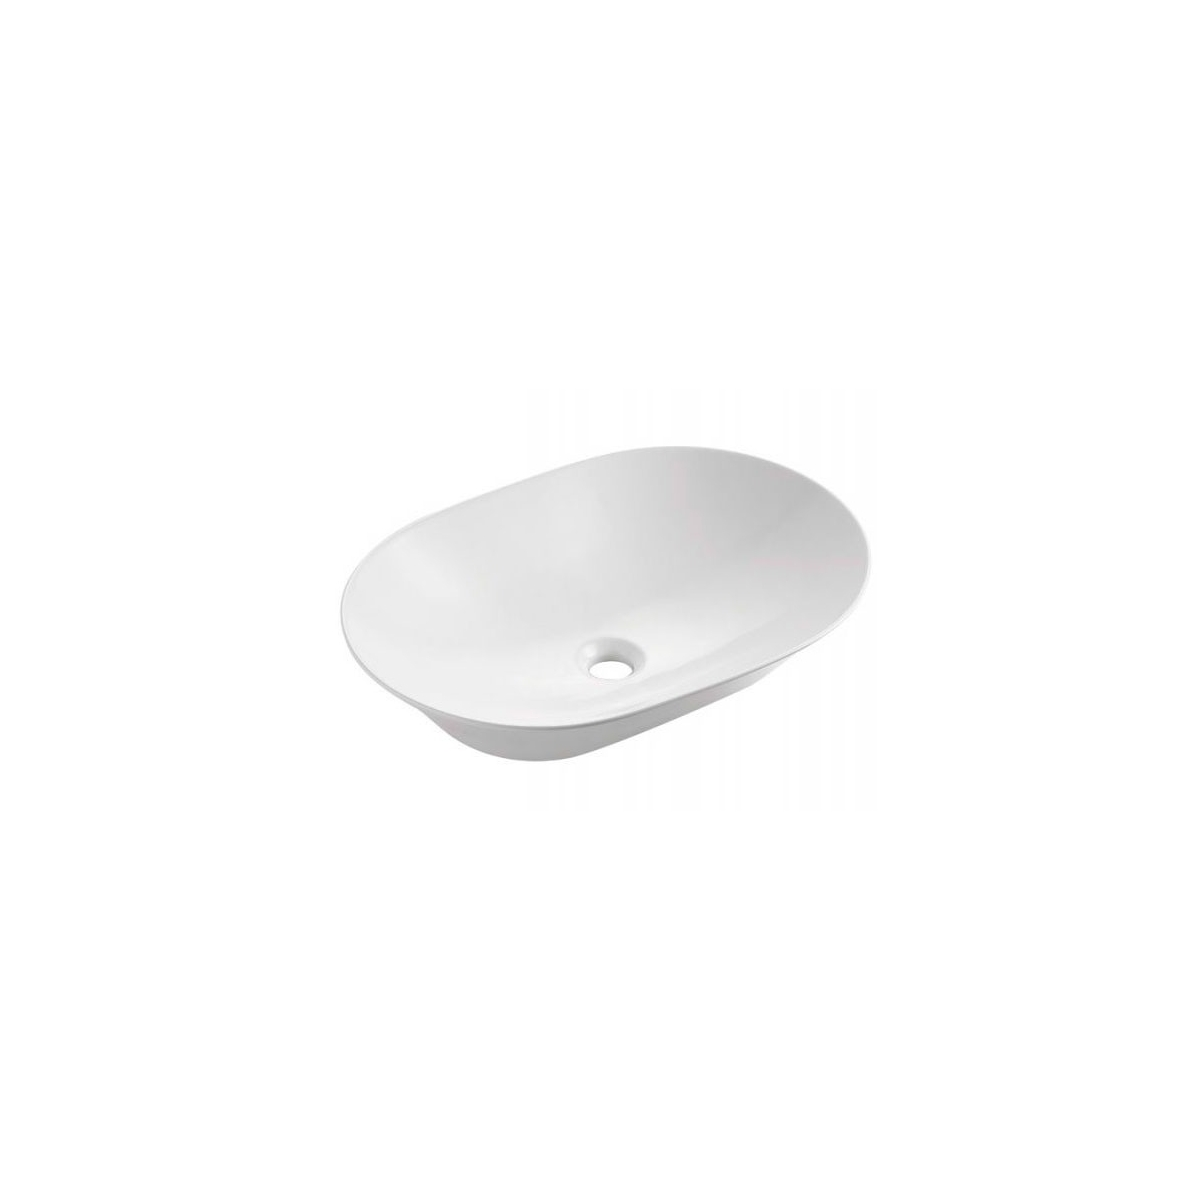 Lavabo Oval New Toulouse - Lavabos ovales - Marca The Bathco